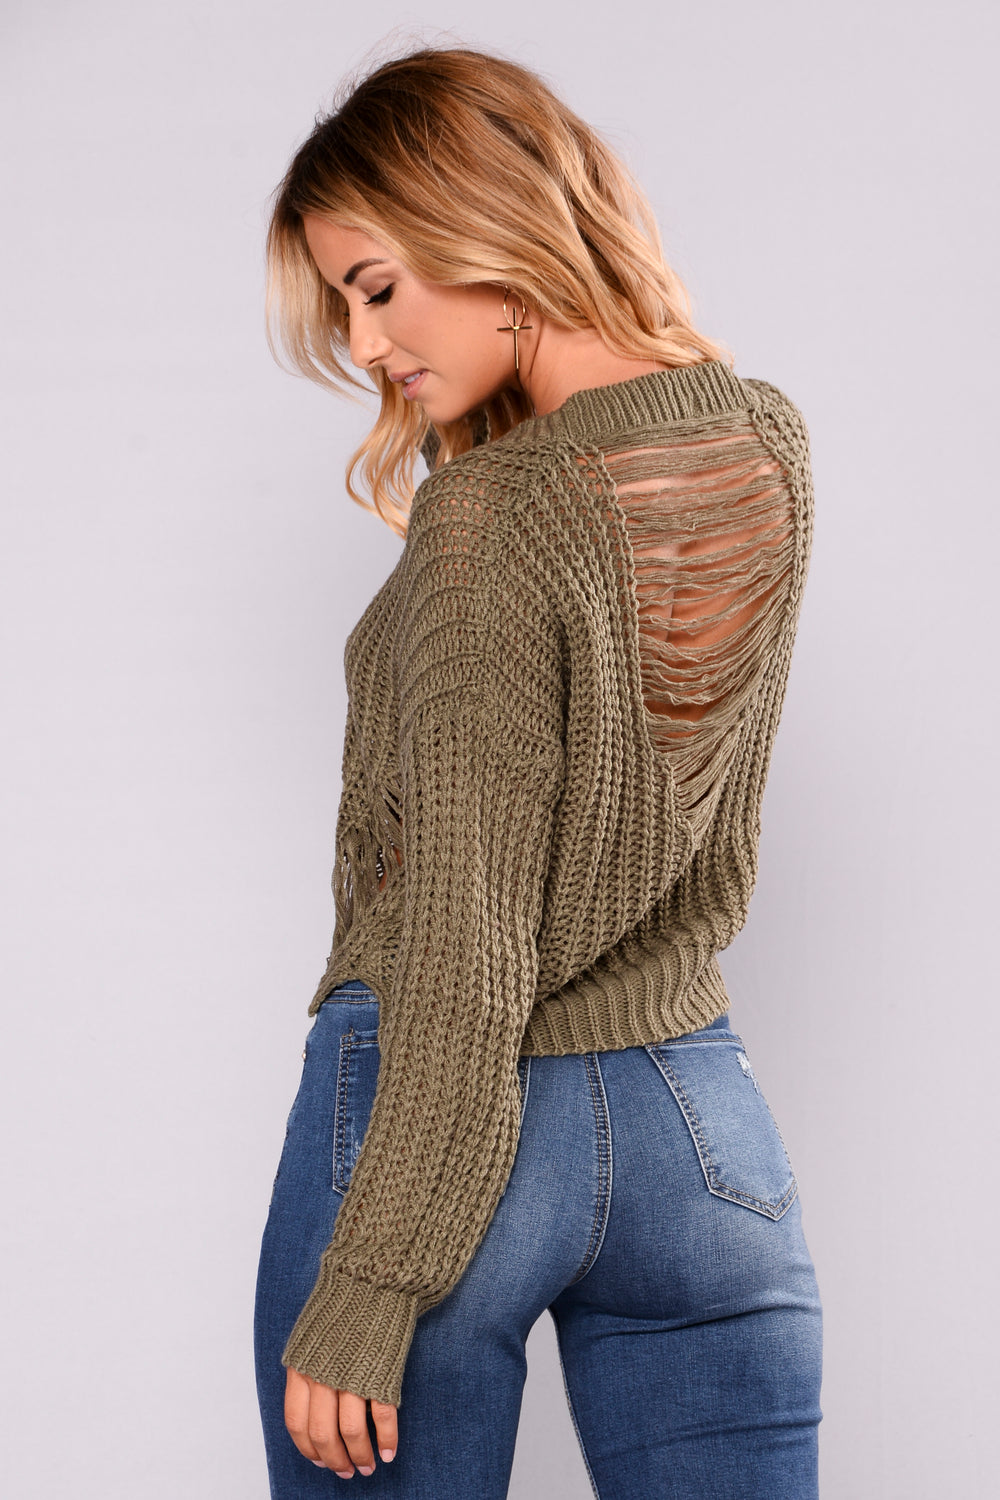 Coralie Long Sleeve Sweater - Olive